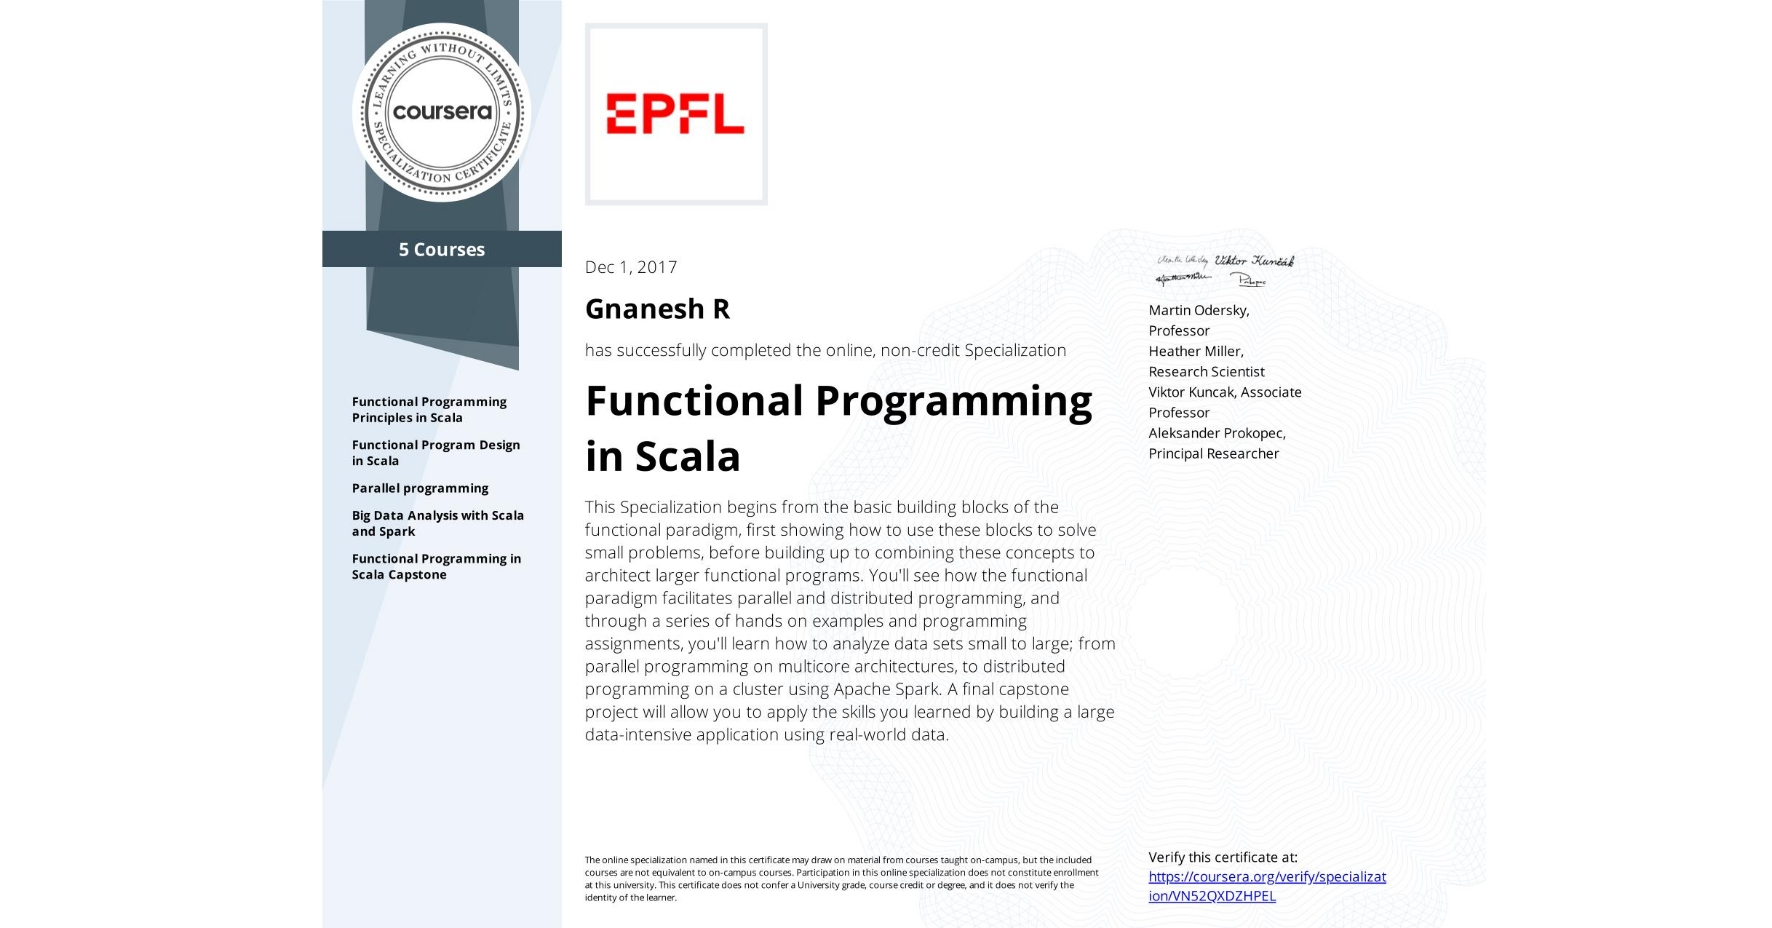 View certificate for Gnanesh R, Functional Programming in Scala, offered through Coursera. This Specialization begins from the basic building blocks of the functional paradigm, first showing how to use these blocks to solve small problems, before building up to combining these concepts to architect larger functional programs. You'll see how the functional paradigm facilitates parallel and distributed programming, and through a series of hands on examples and programming assignments, you'll learn how to analyze data sets small to large; from parallel programming on multicore architectures, to distributed programming on a cluster using Apache Spark. A final capstone project will allow you to apply the skills you learned by building a large data-intensive application using real-world data.